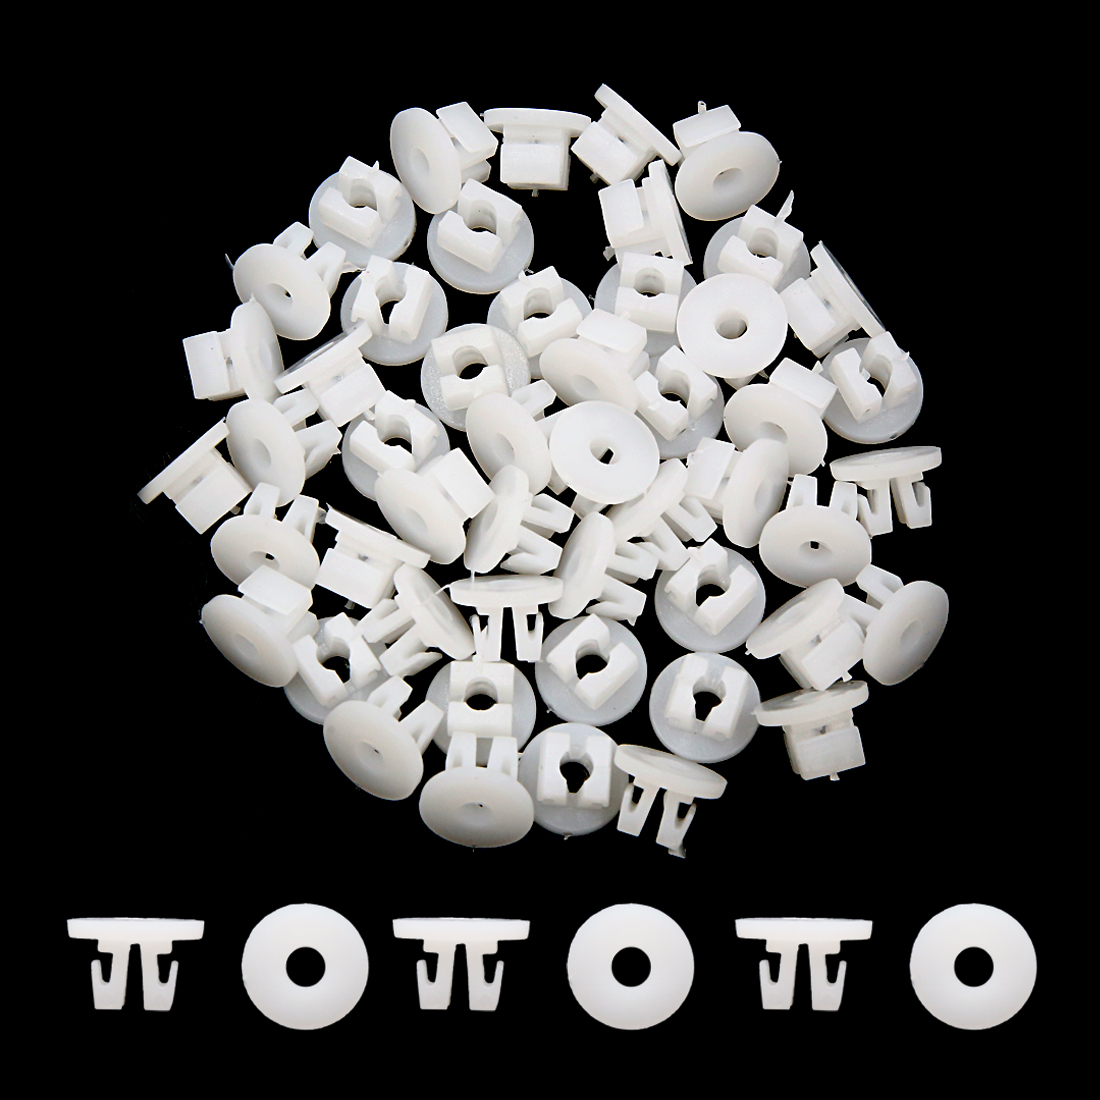 50pcs-9mm-Hole-14mm-Head-Auto-Car-Rivets-Door-Trim-Clips-Fasteners-White